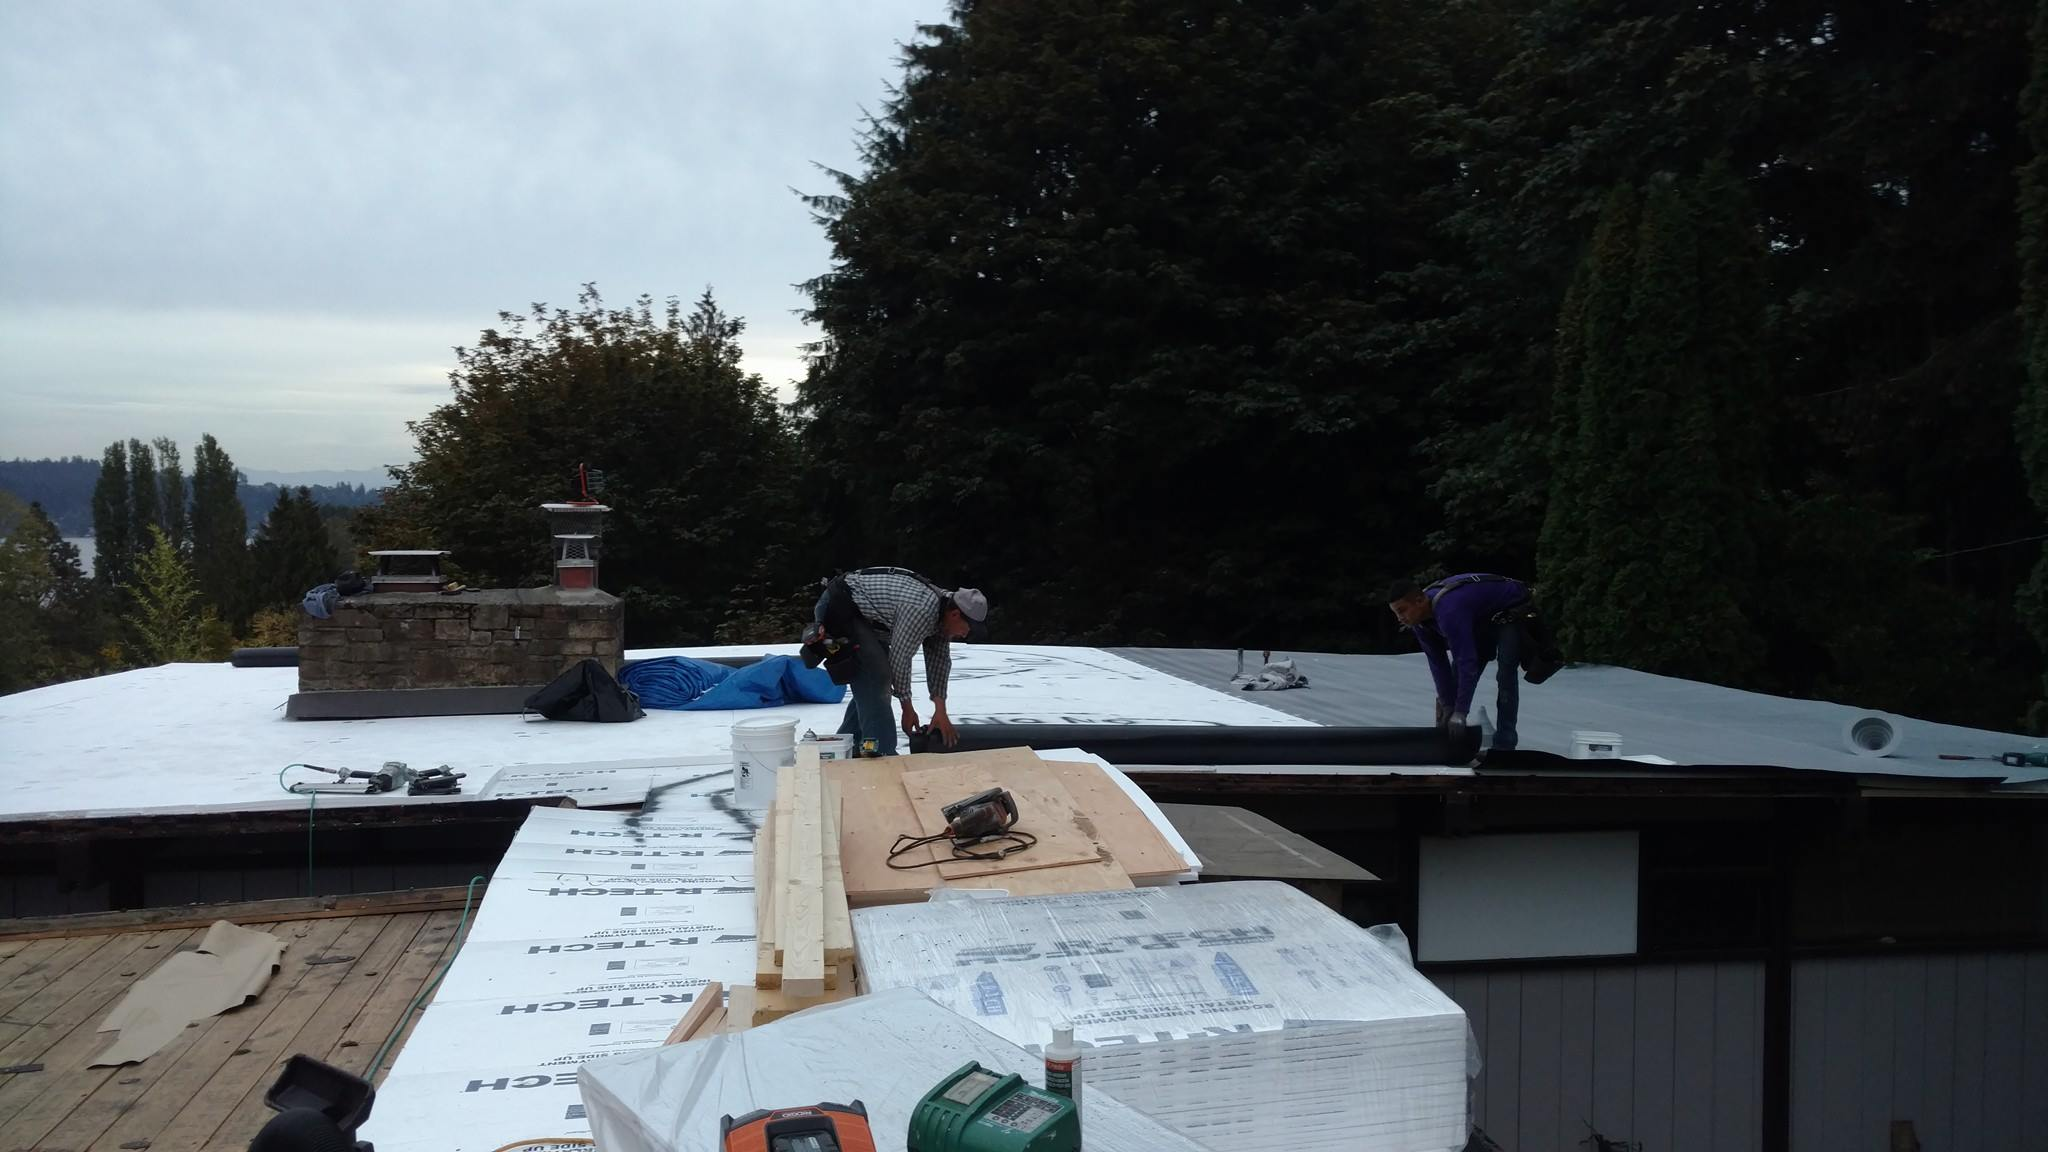 Flat Residential roofing Seattle